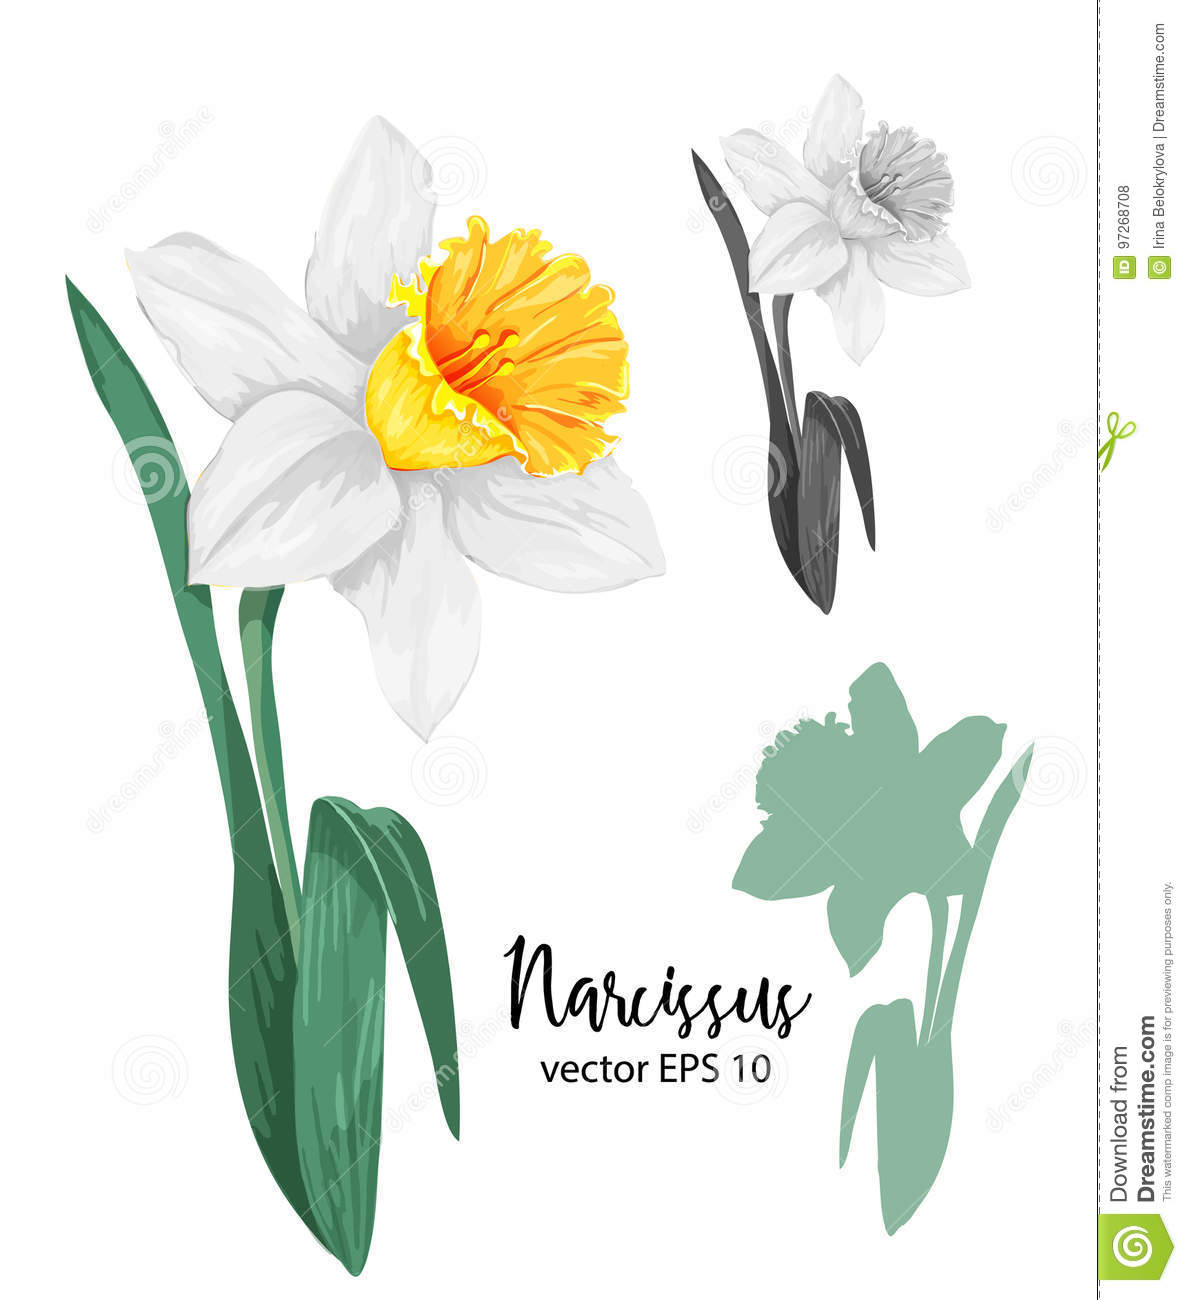 Daffodil clipart flower blossom. Vector realistic narcissus set graphic transparent